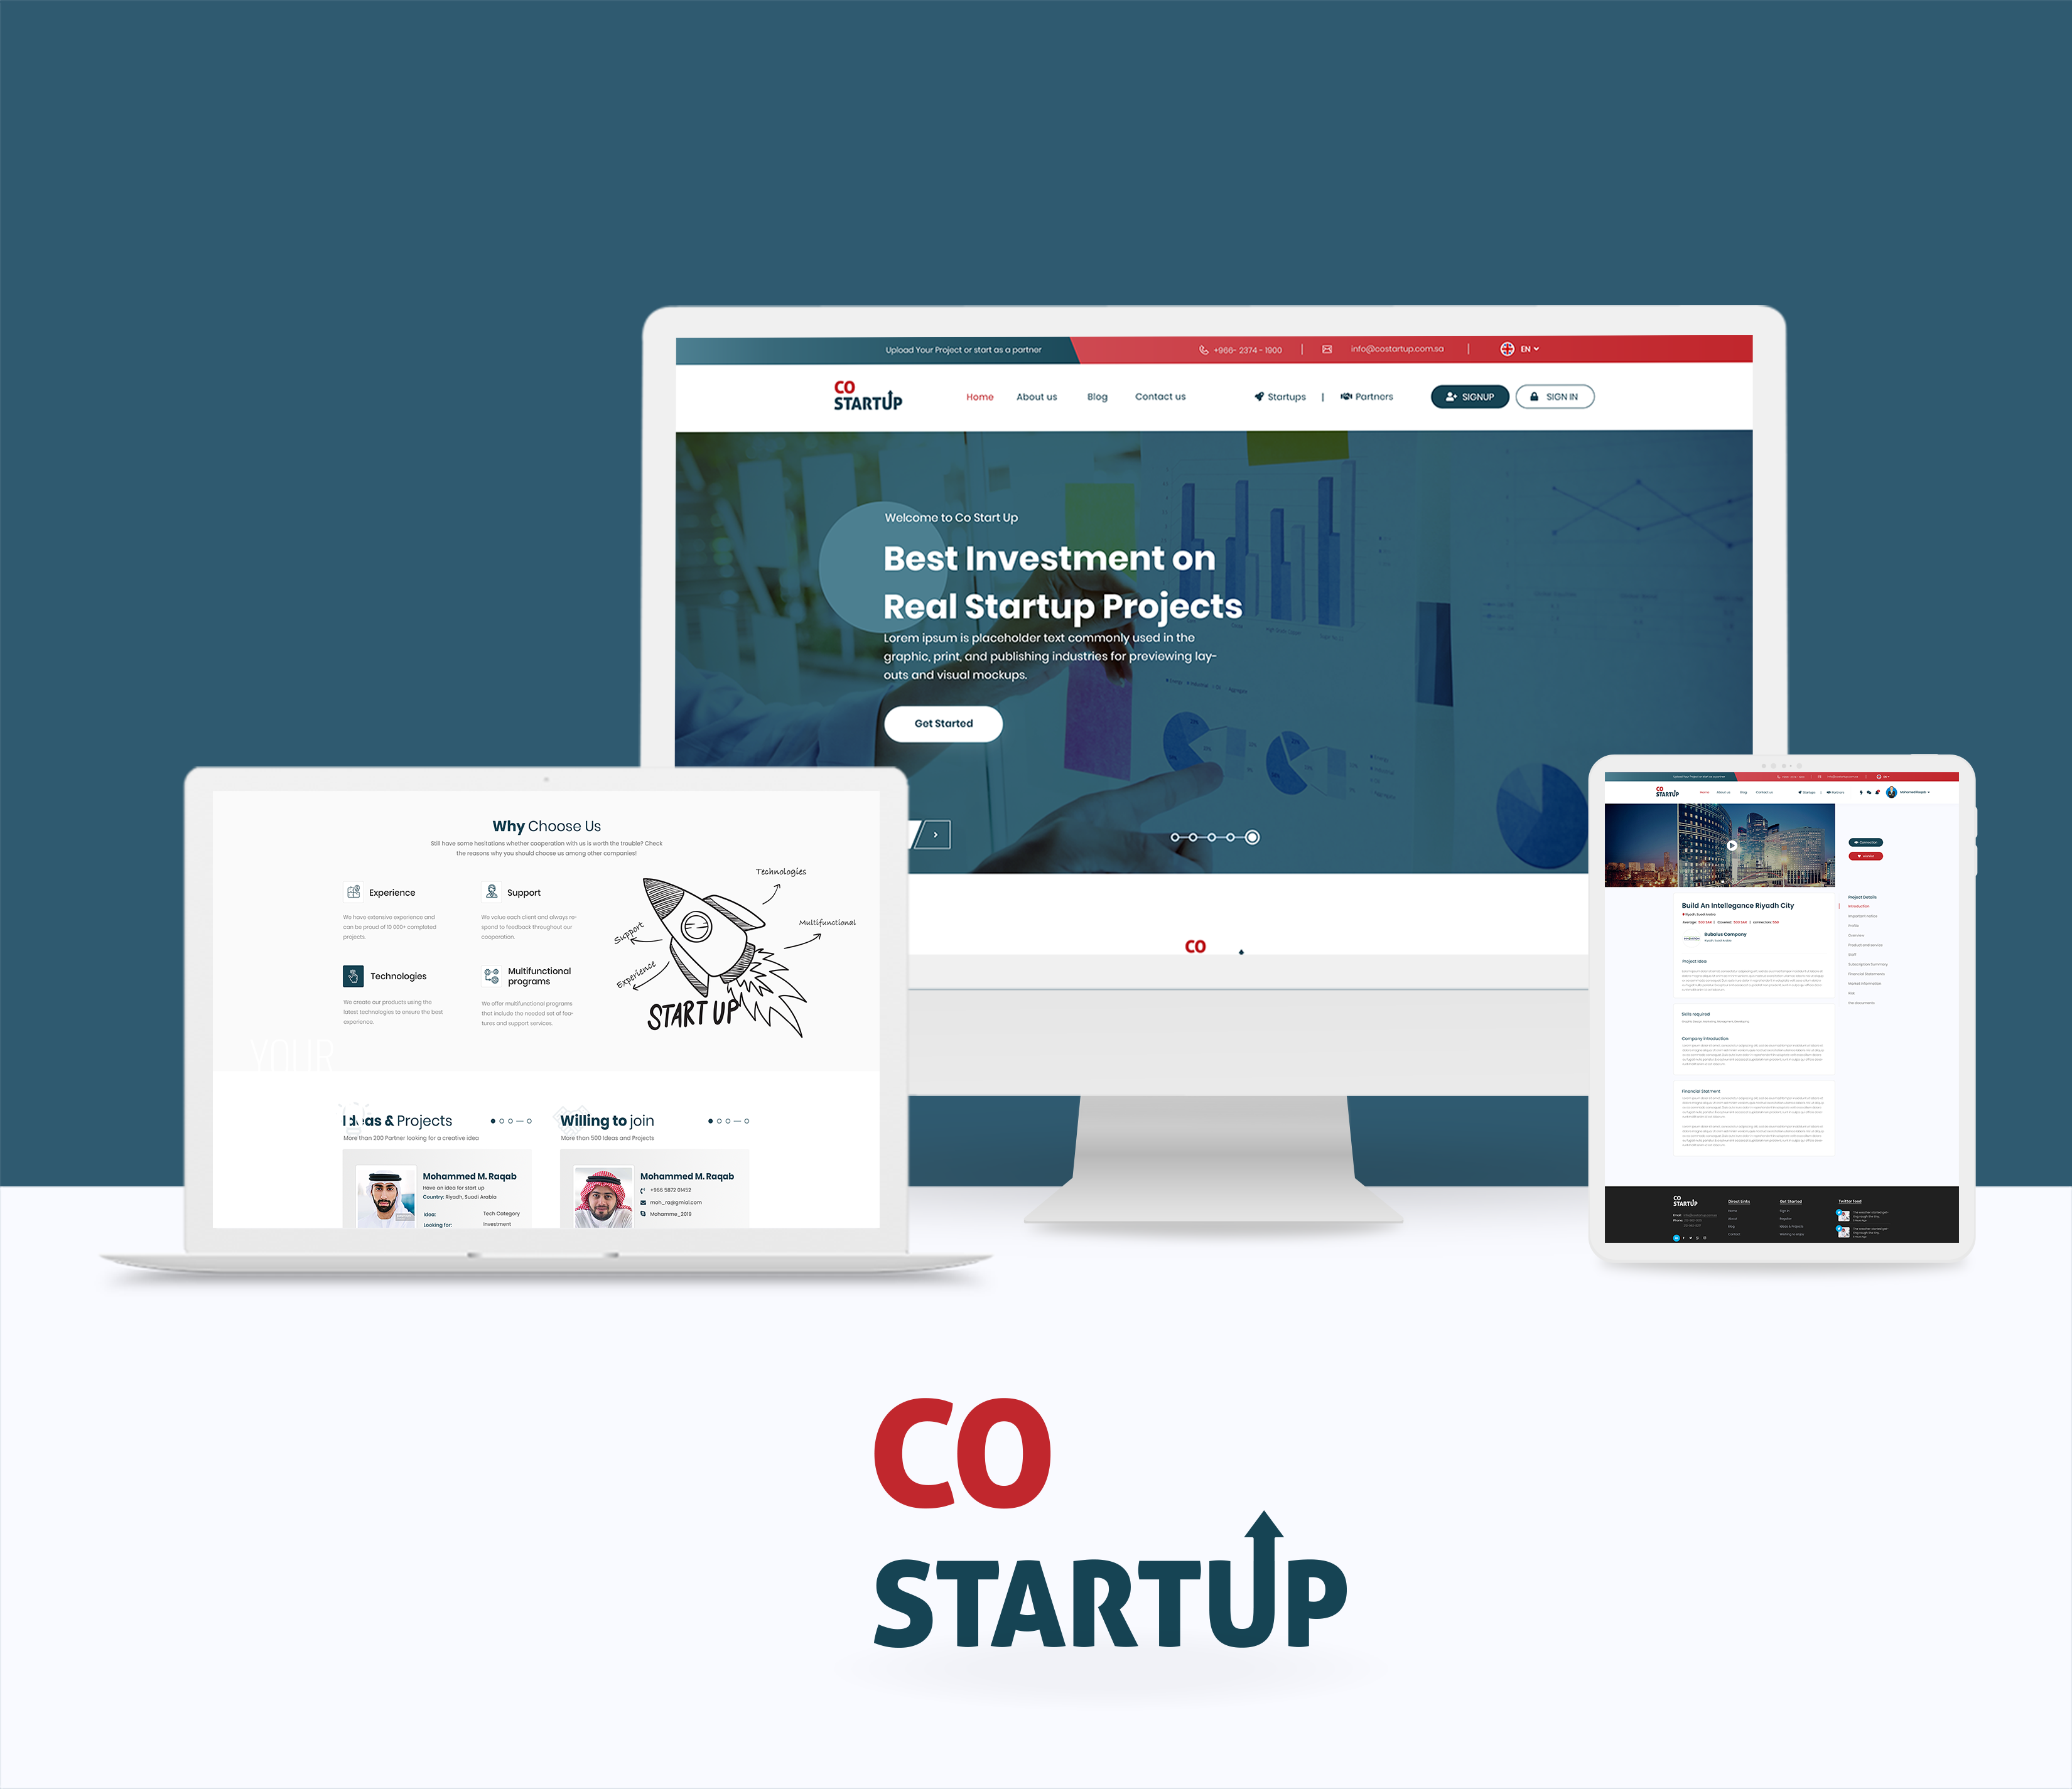 co startup